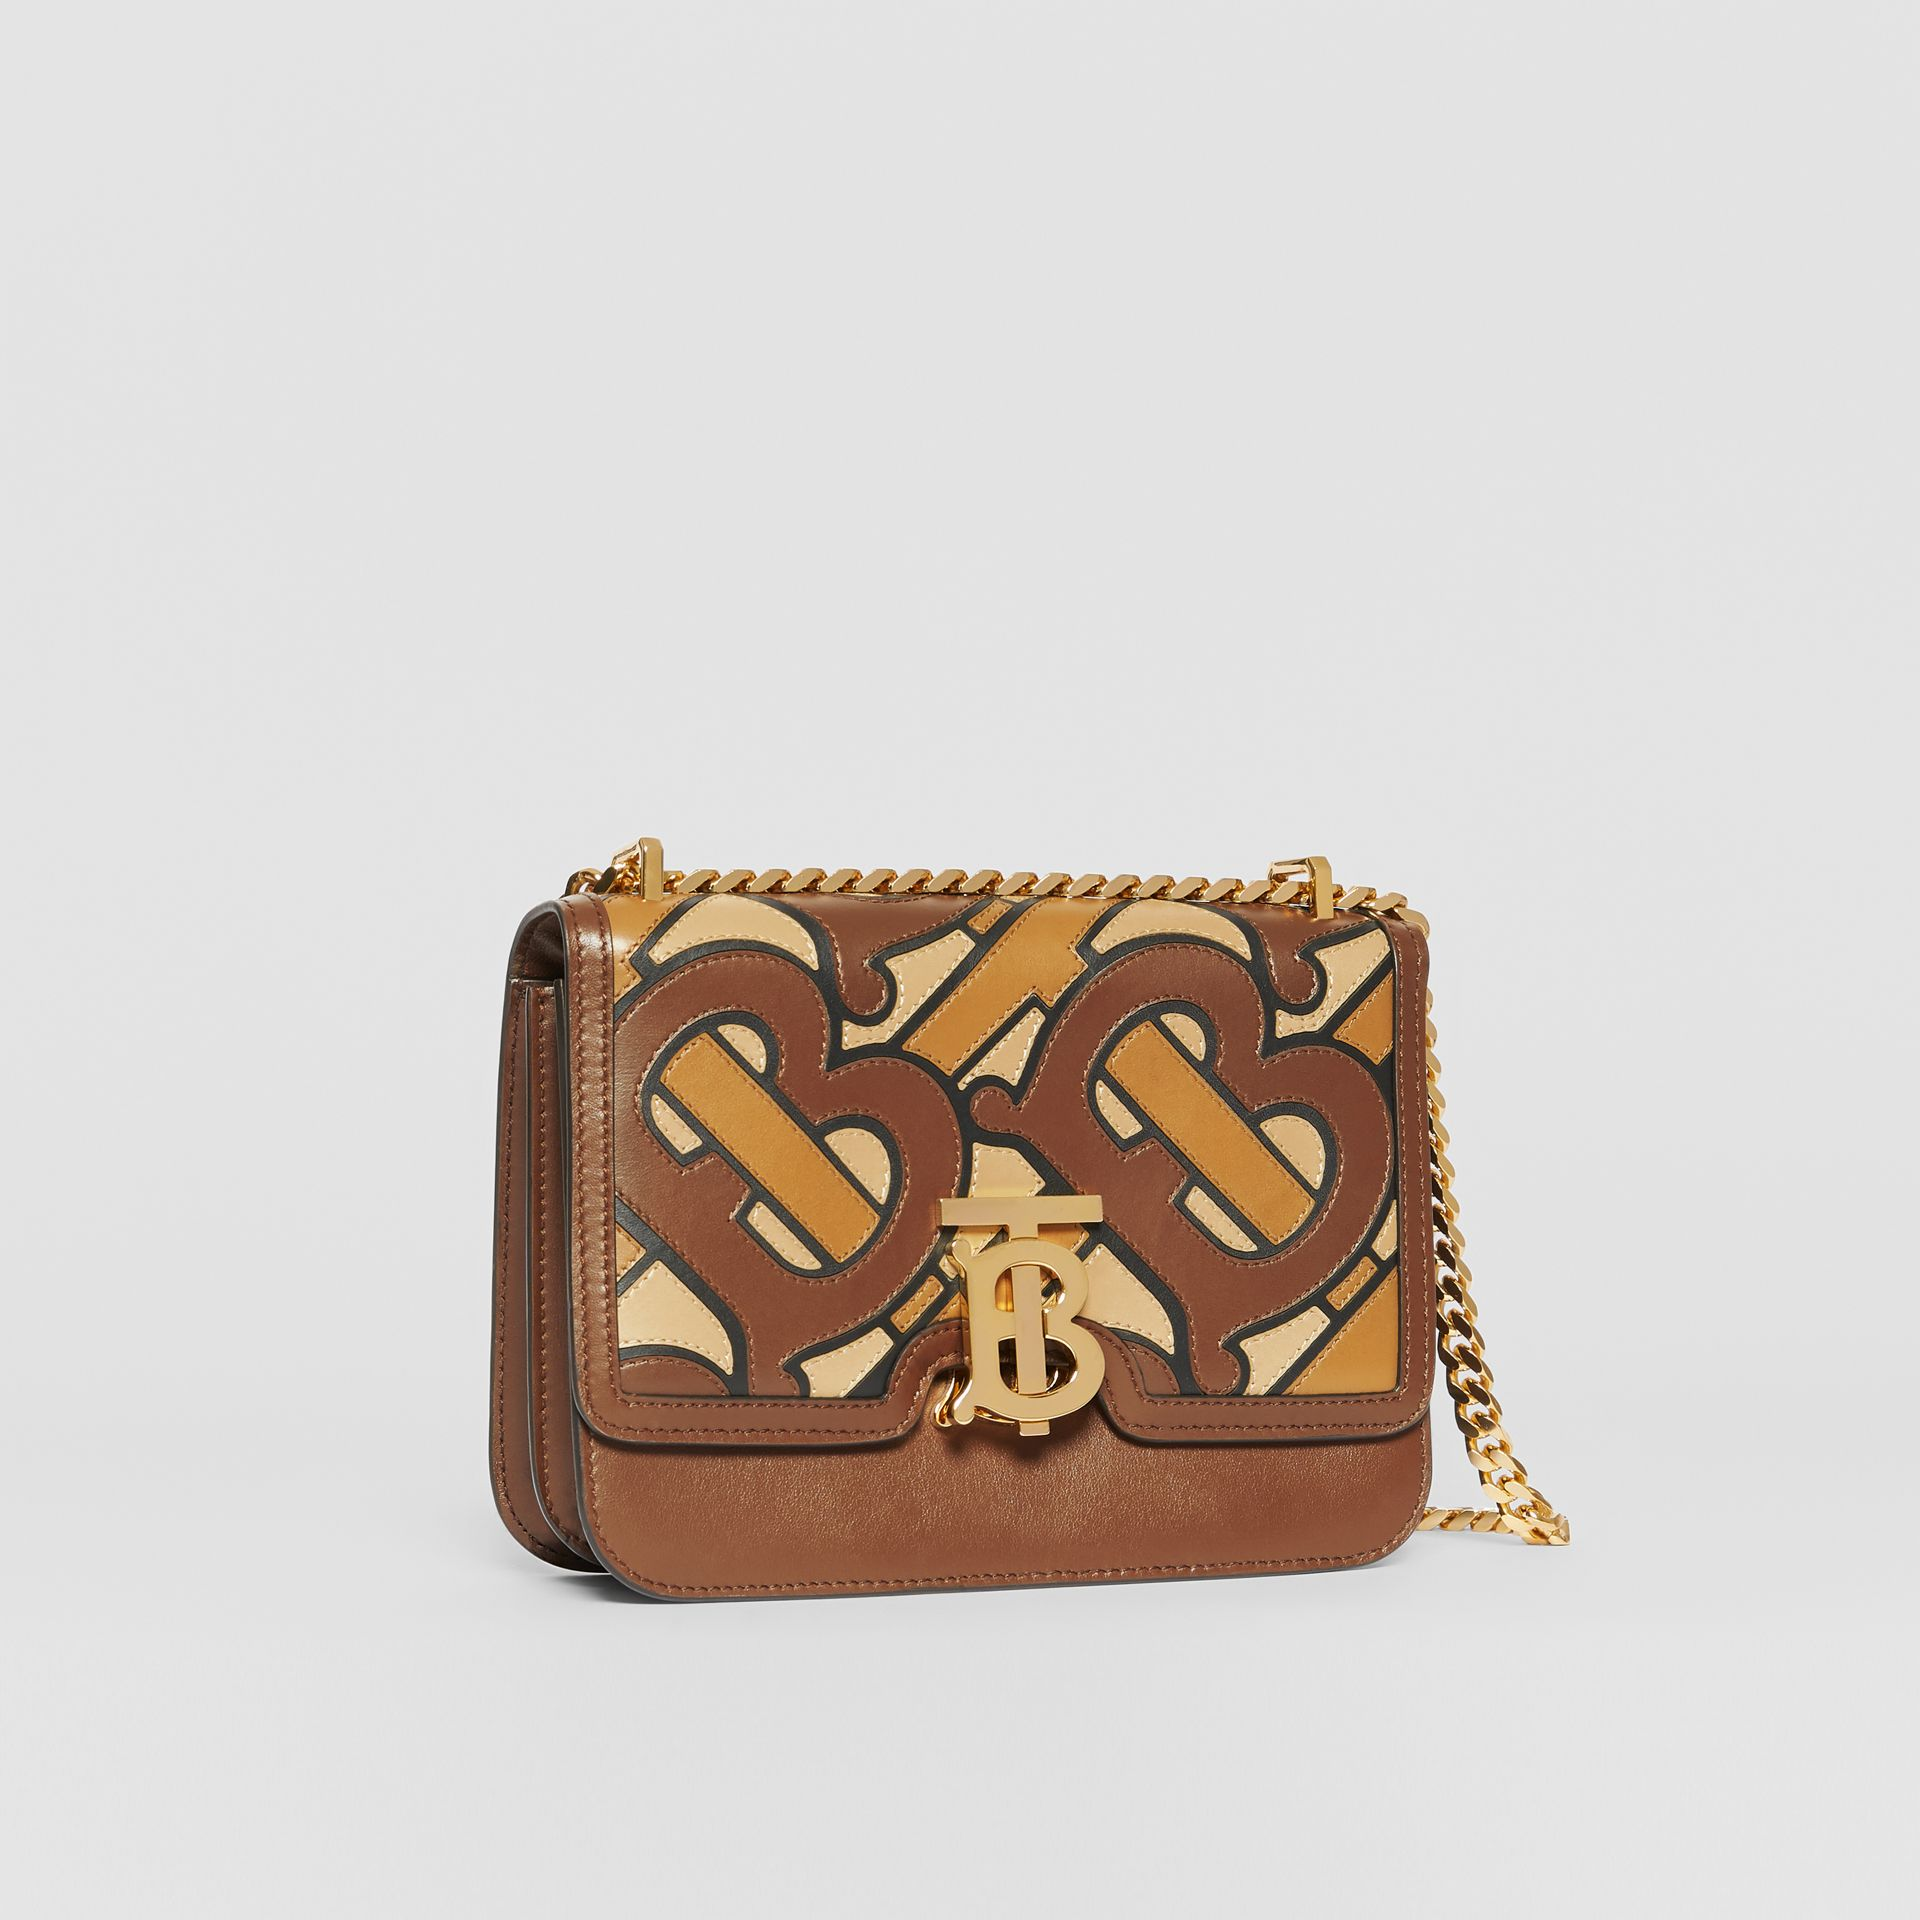 Small Monogram Appliqué Leather TB Bag in Brown - Women | Burberry United Kingdom - gallery image 6